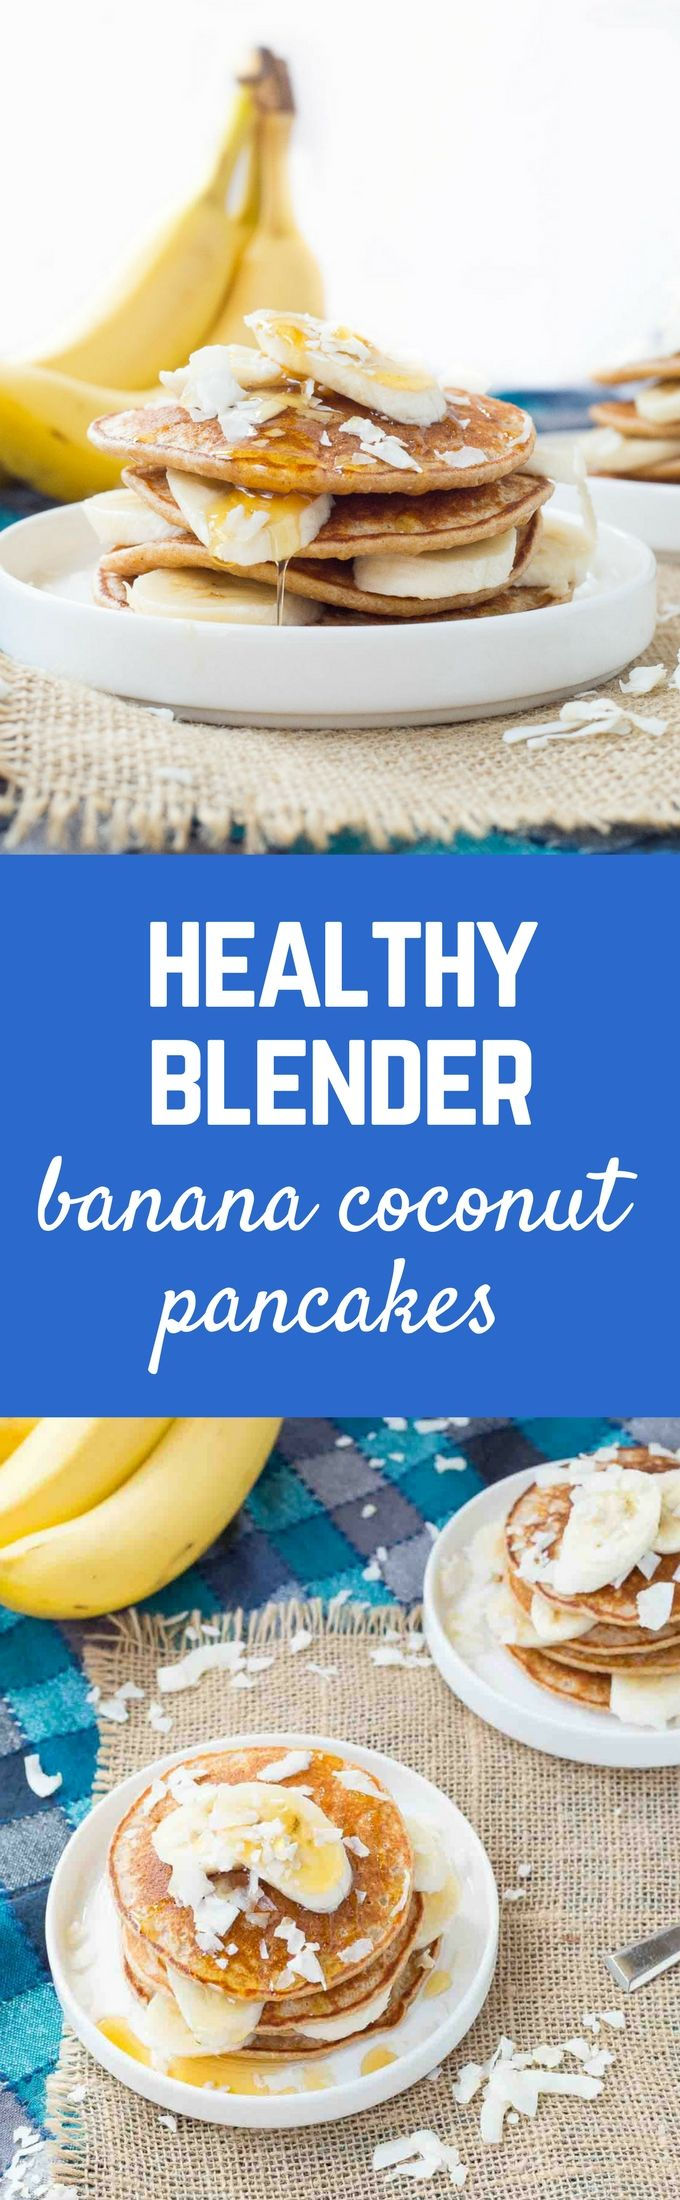 Pull our your blender and make these easy (AND HEALTHY!) banana coconut blender…